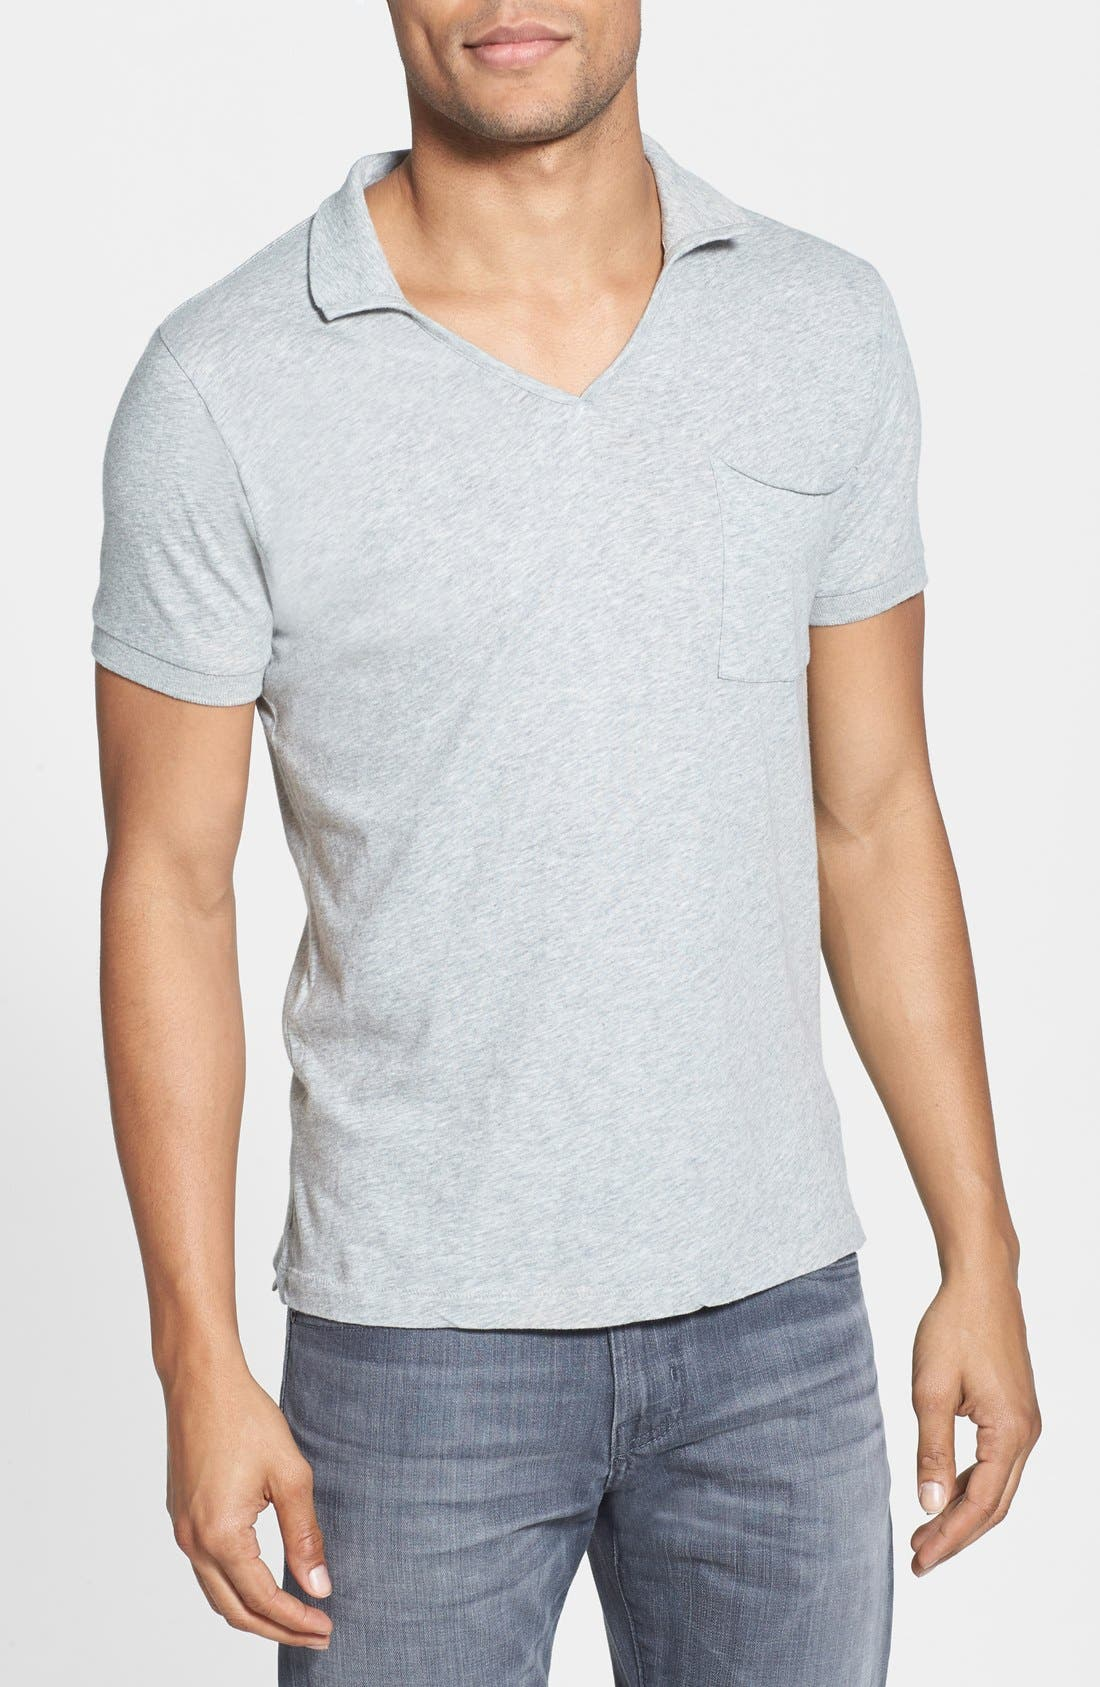 Alternate Image 1 Selected - French Connection 'Lunar' Slim Fit V-Neck Jersey Polo Shirt